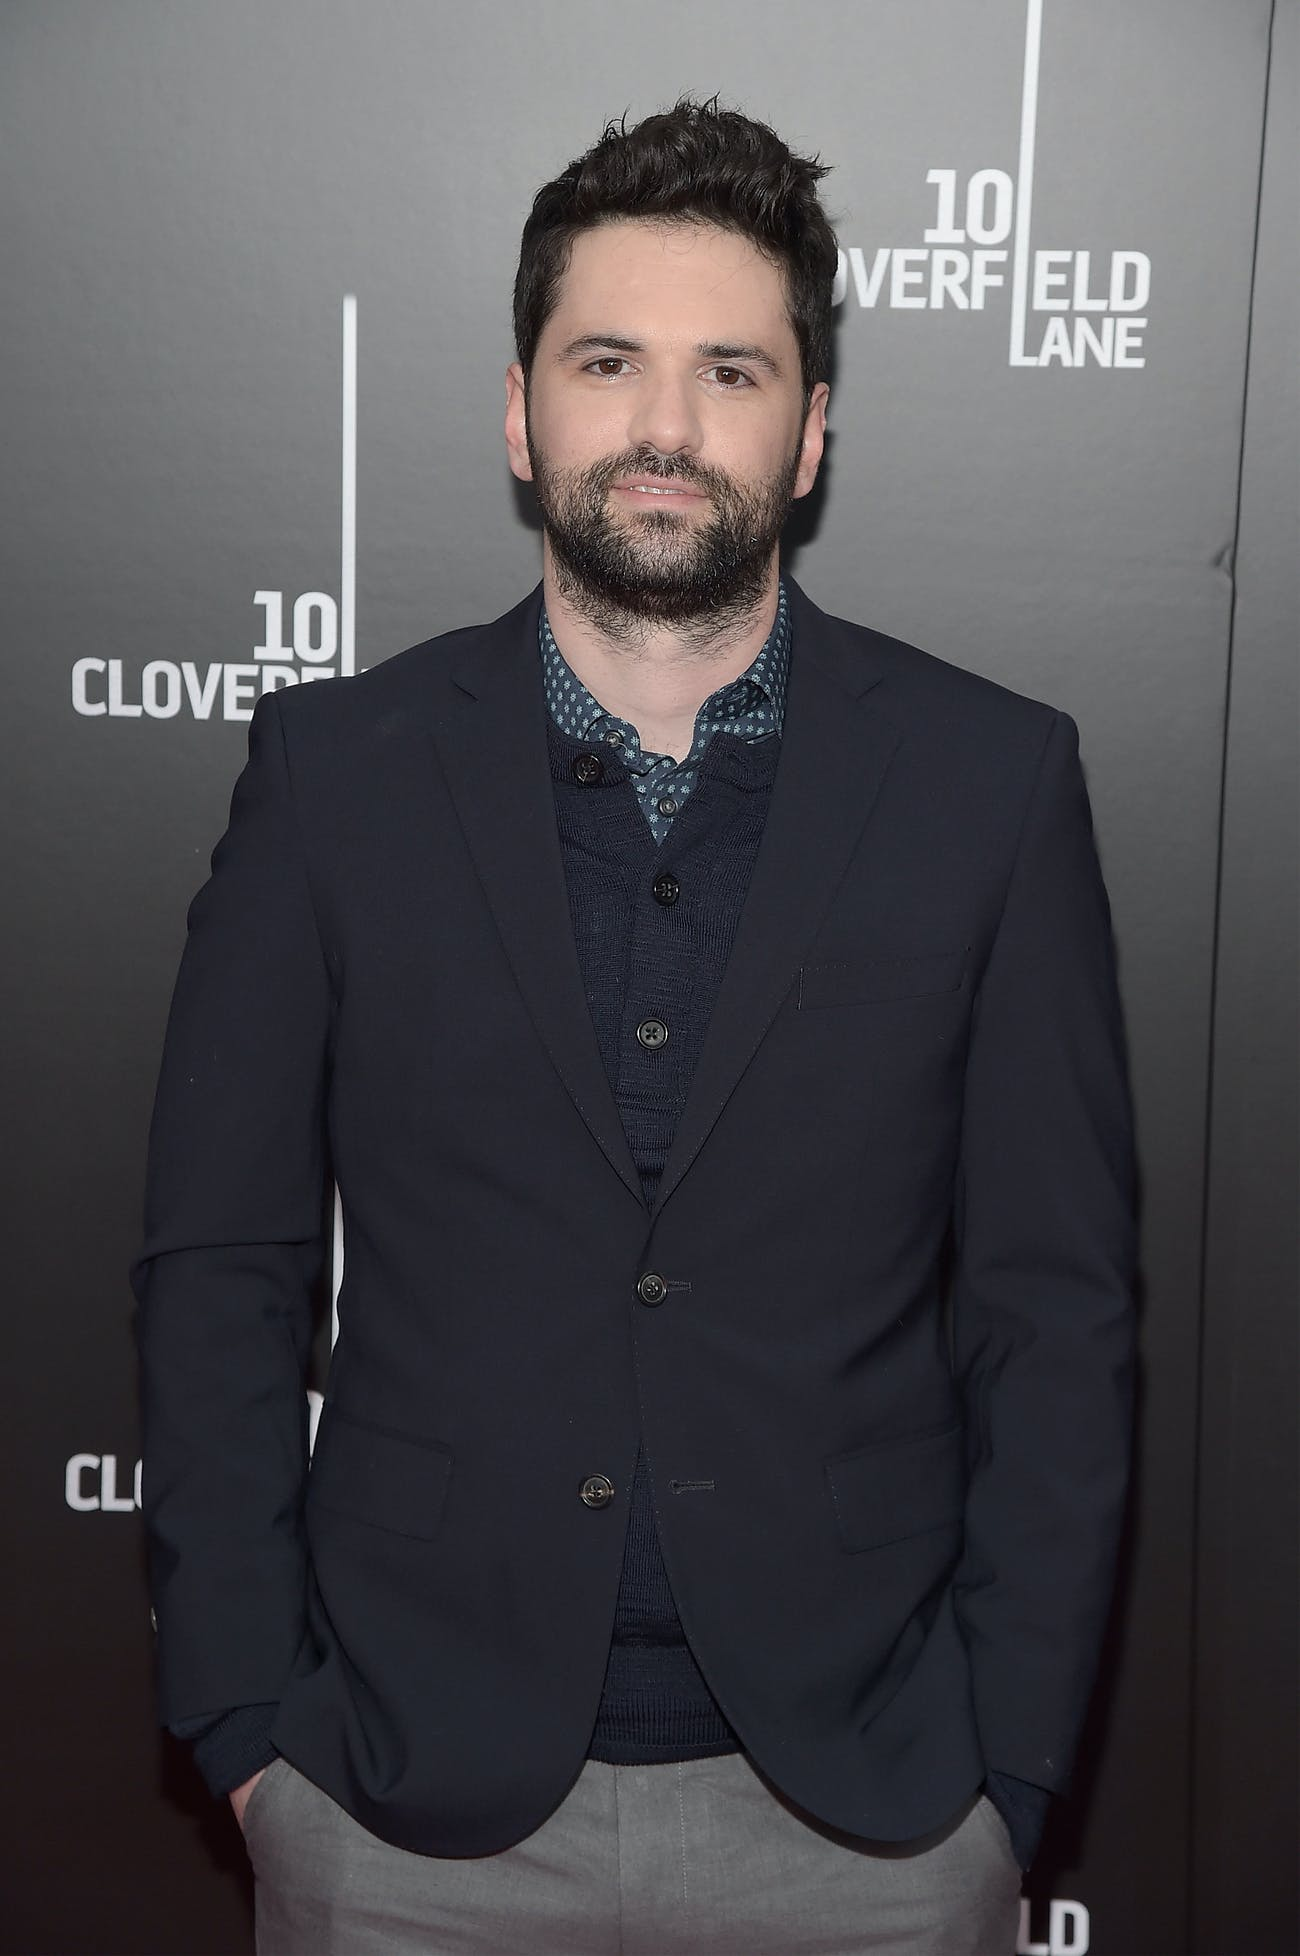 'Black Mirror' Director Dan Trachtenberg attends the '10 Cloverfield Lane' premiere.